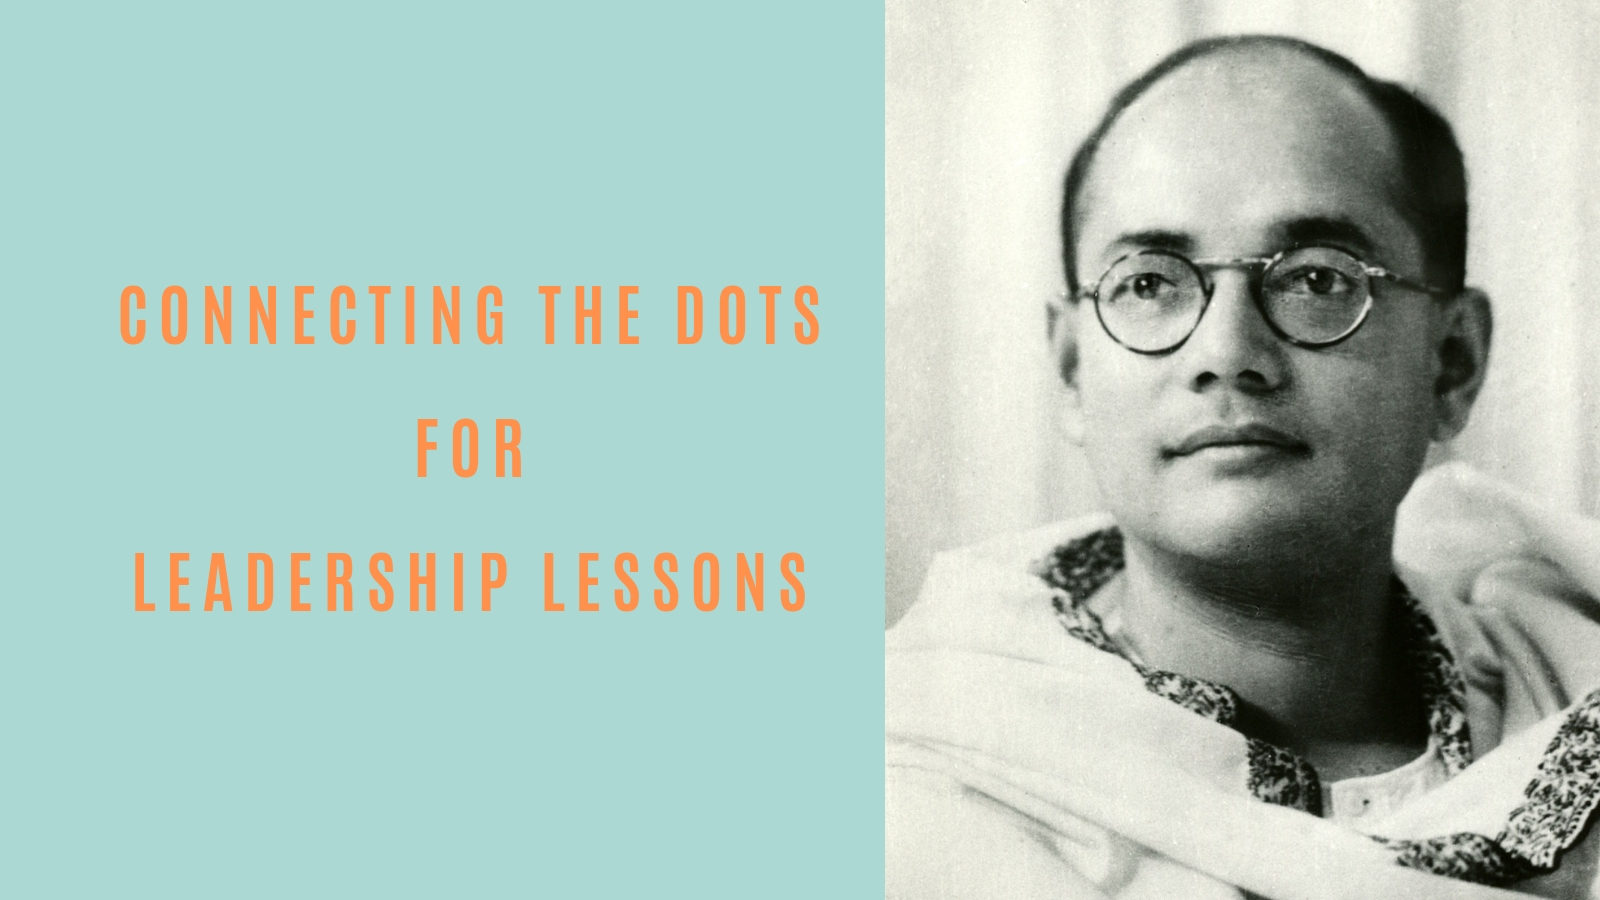 Connecting the Dots for Leadership Lessons - by Naveen Lakkur